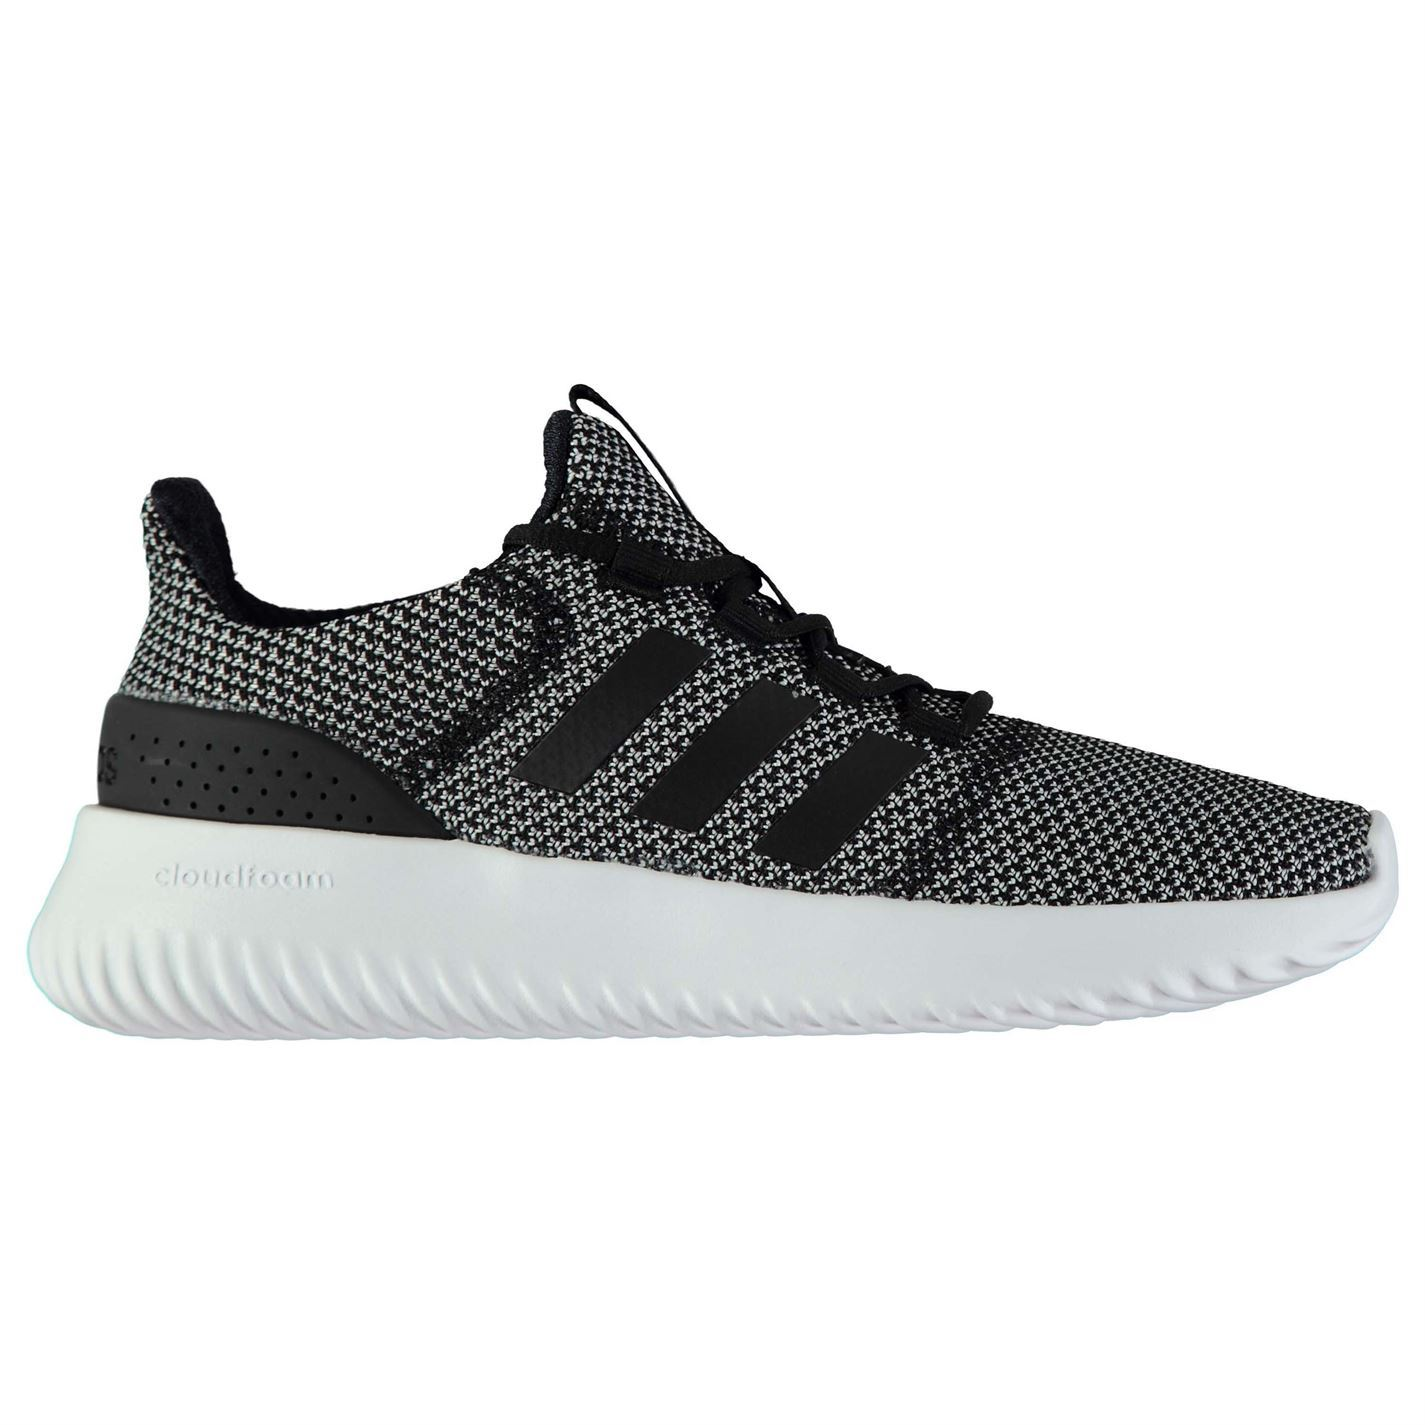 new arrival 6d84f a072e ... adidas Cloudfoam Ultimate Trainers Mens Grey Black White Athletic  Sneakers Shoes ...